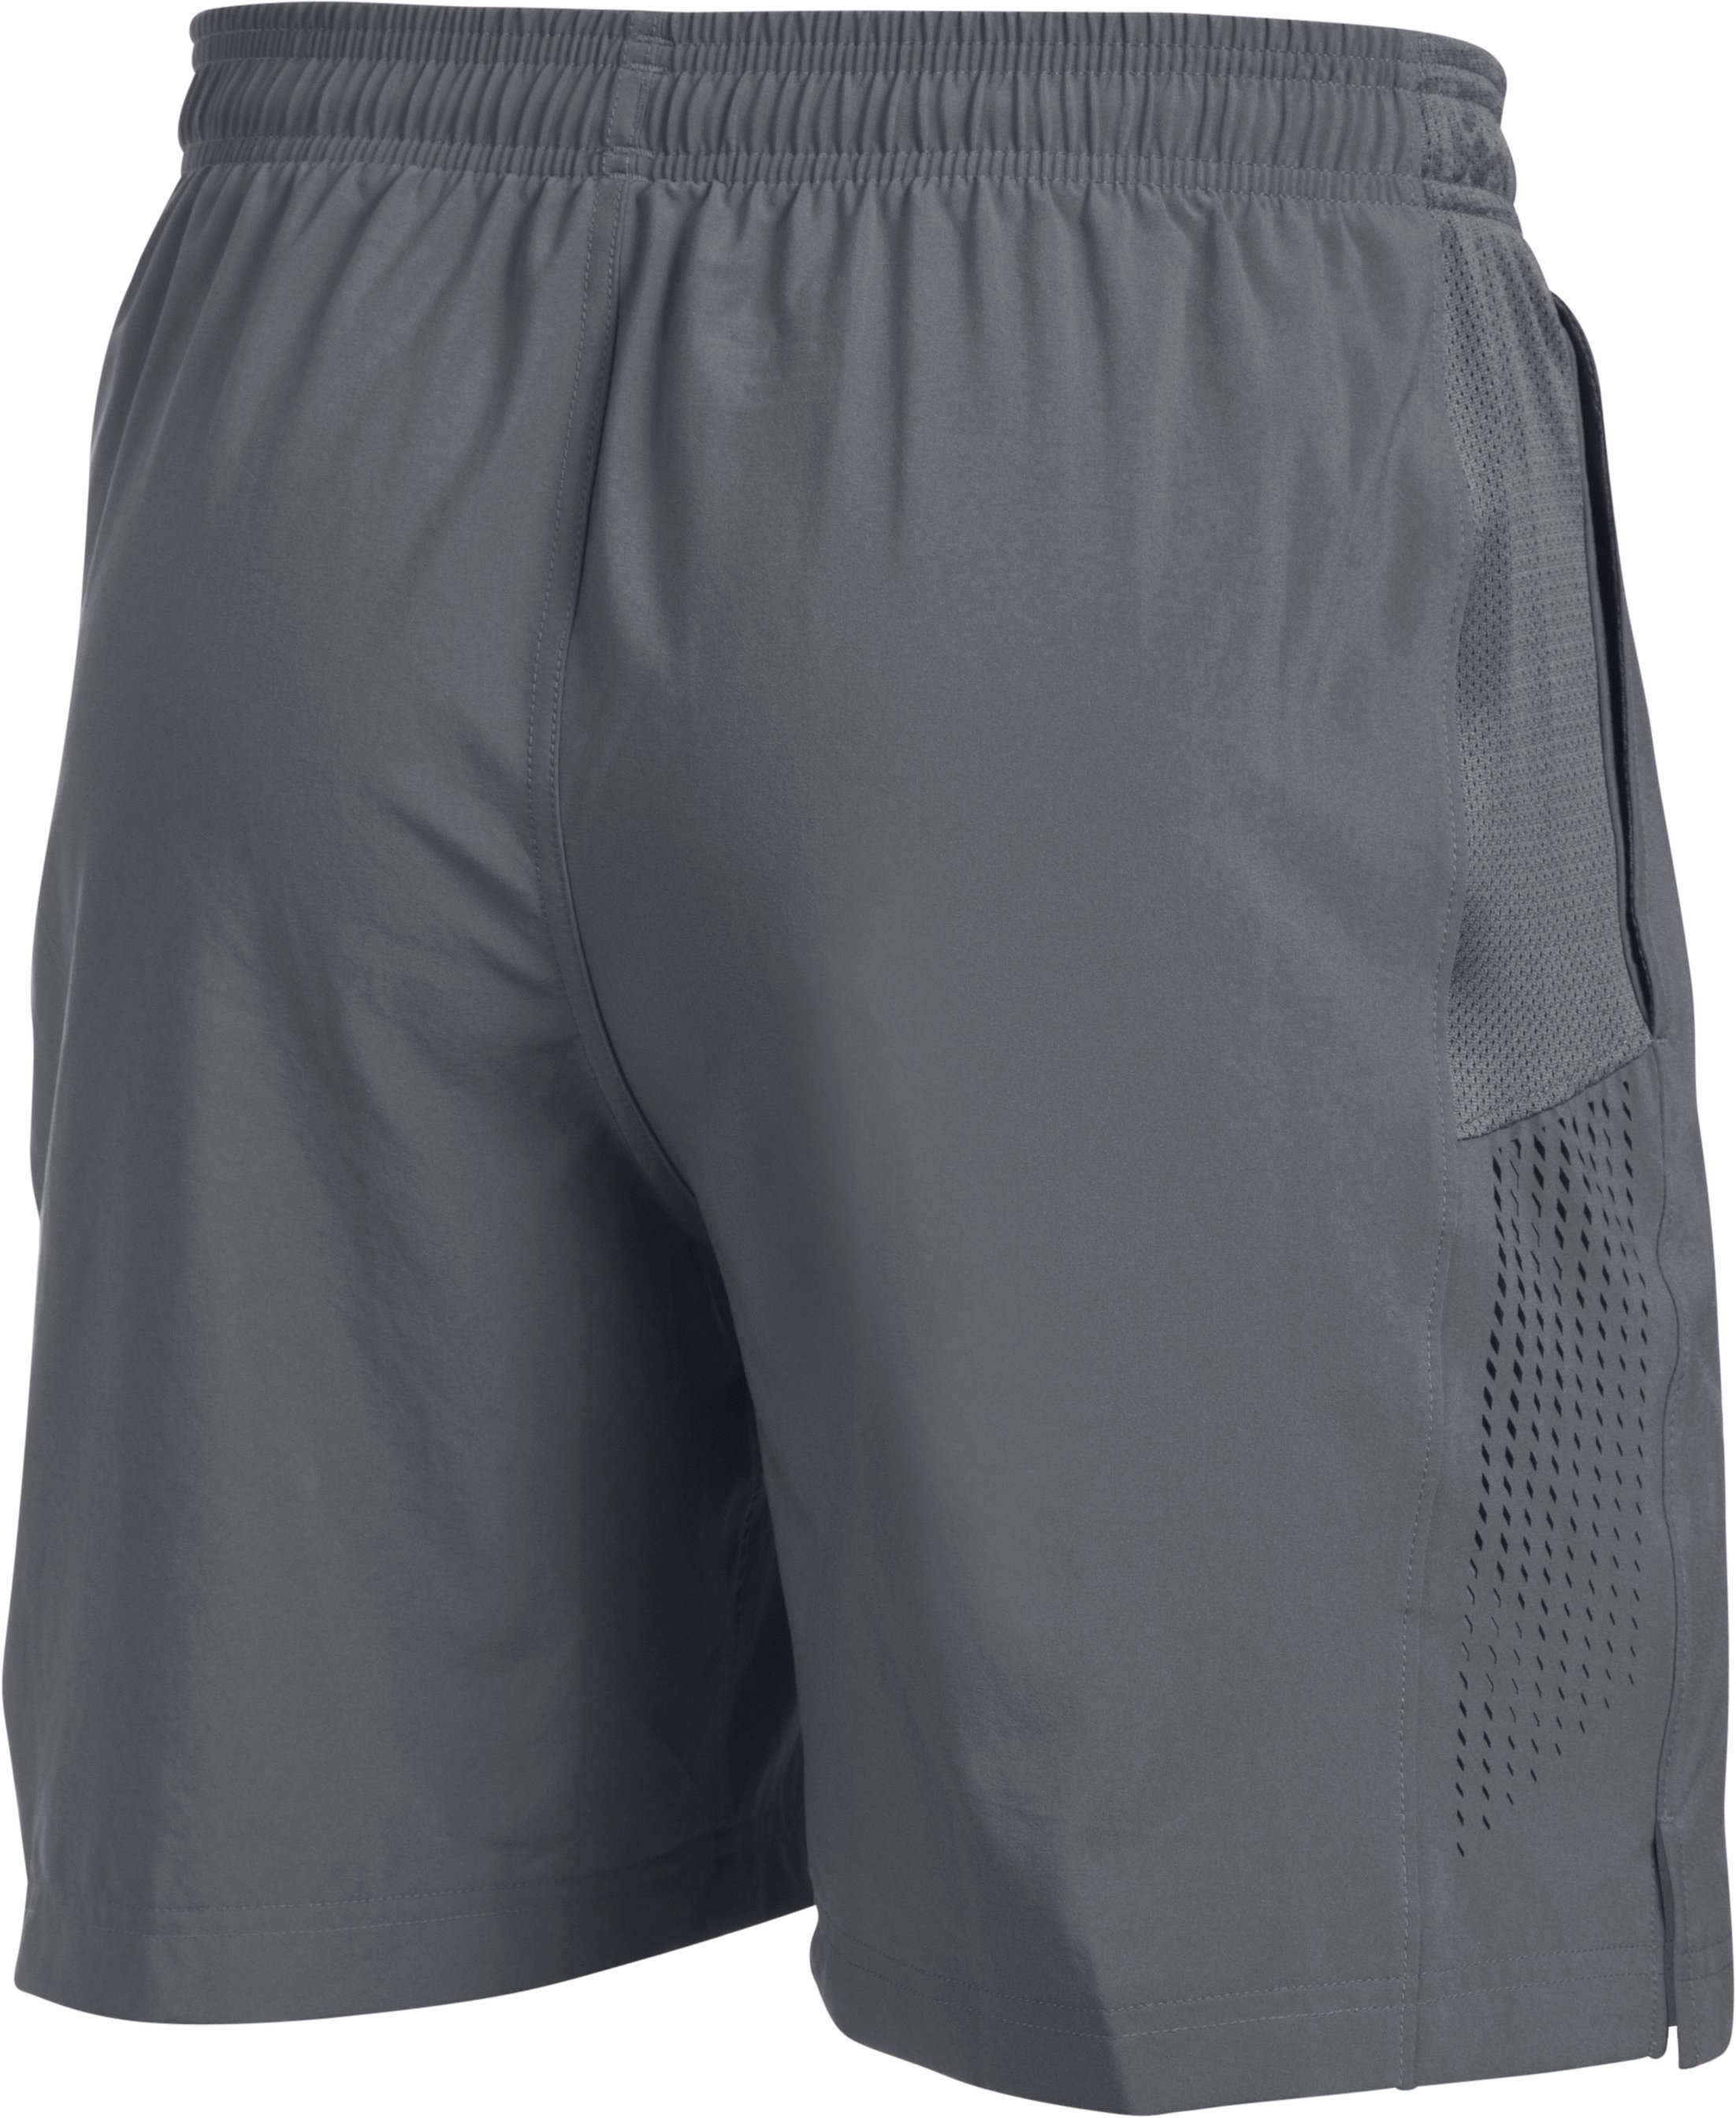 "Men's UA Performance Run 7"" Linerless Shorts, Graphite,"